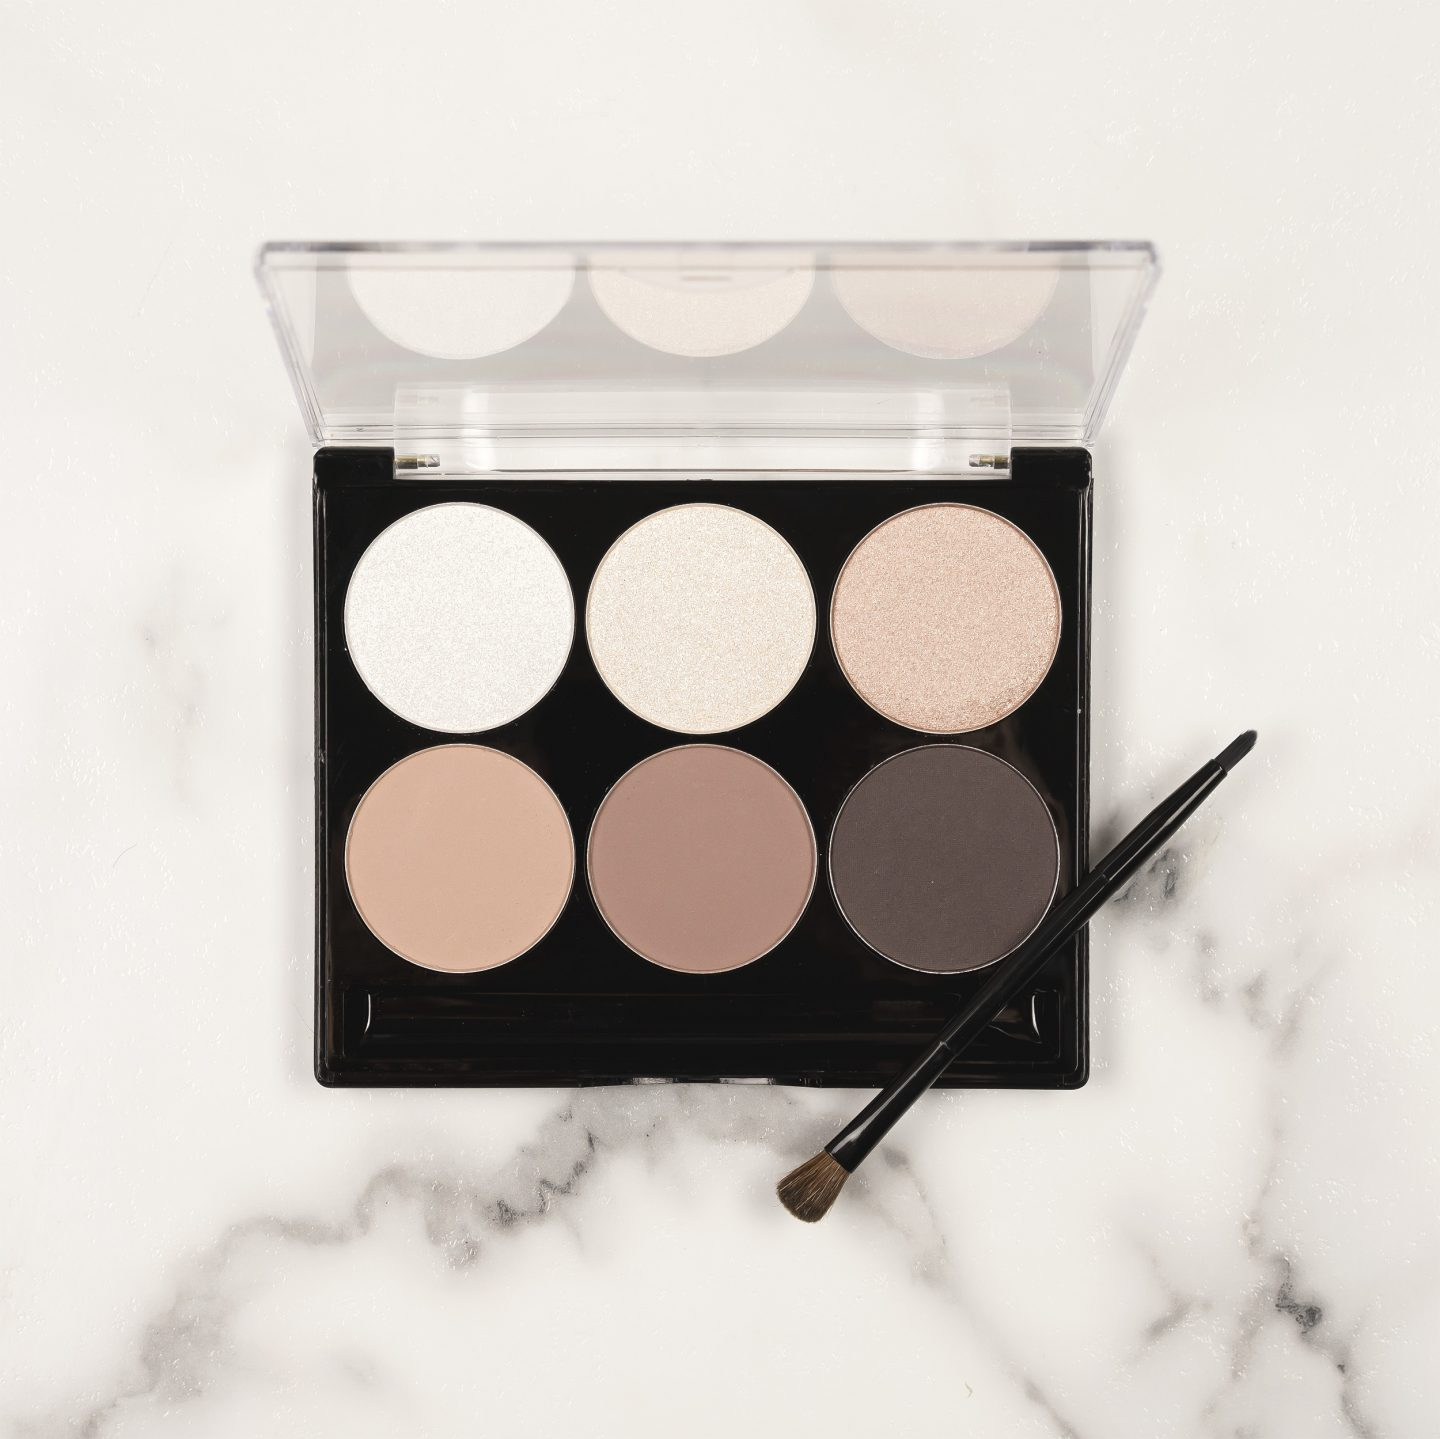 eyeshadow palette makeup to go blog tania d russell makeup educator Los Angeles San Francisco cosmetics beauty makeup